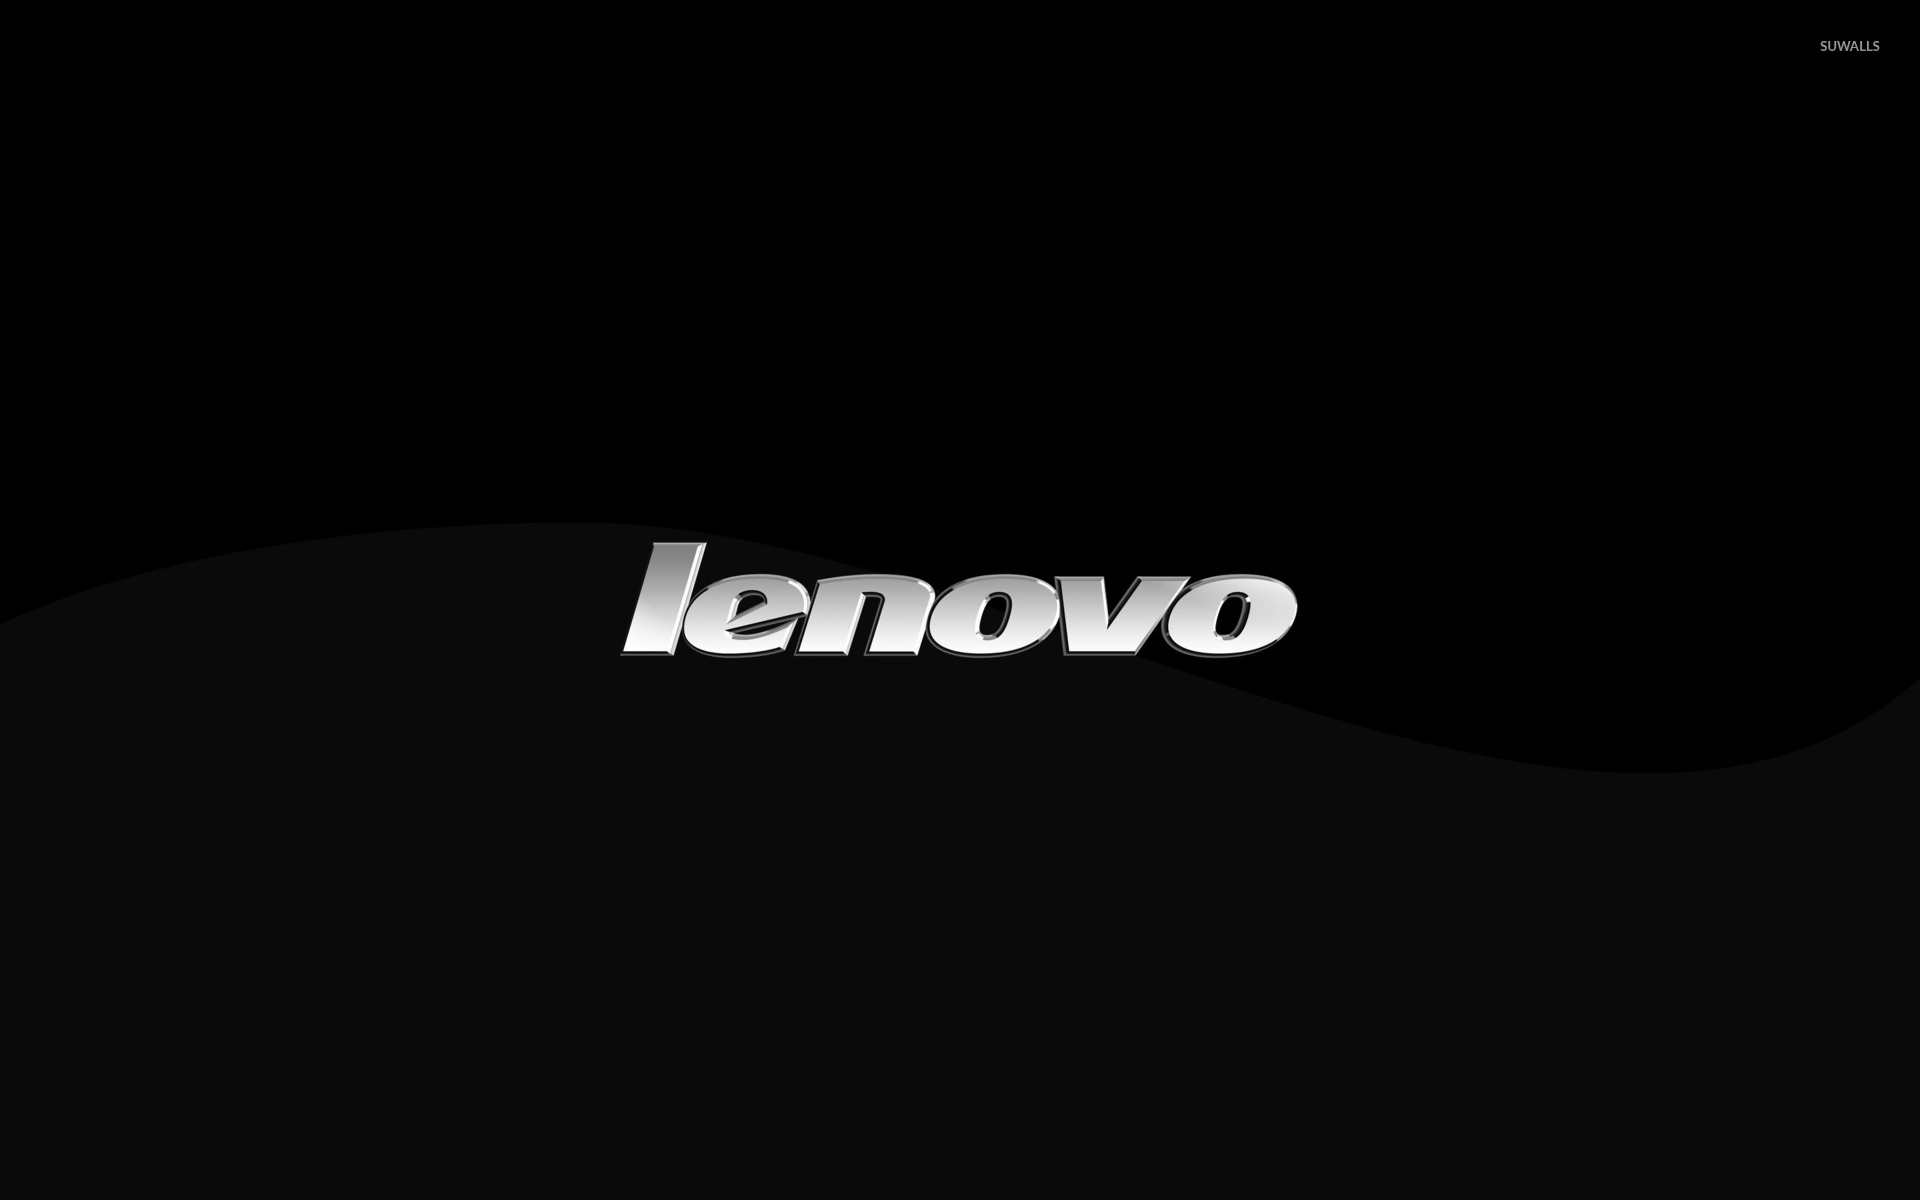 Lenovo company background